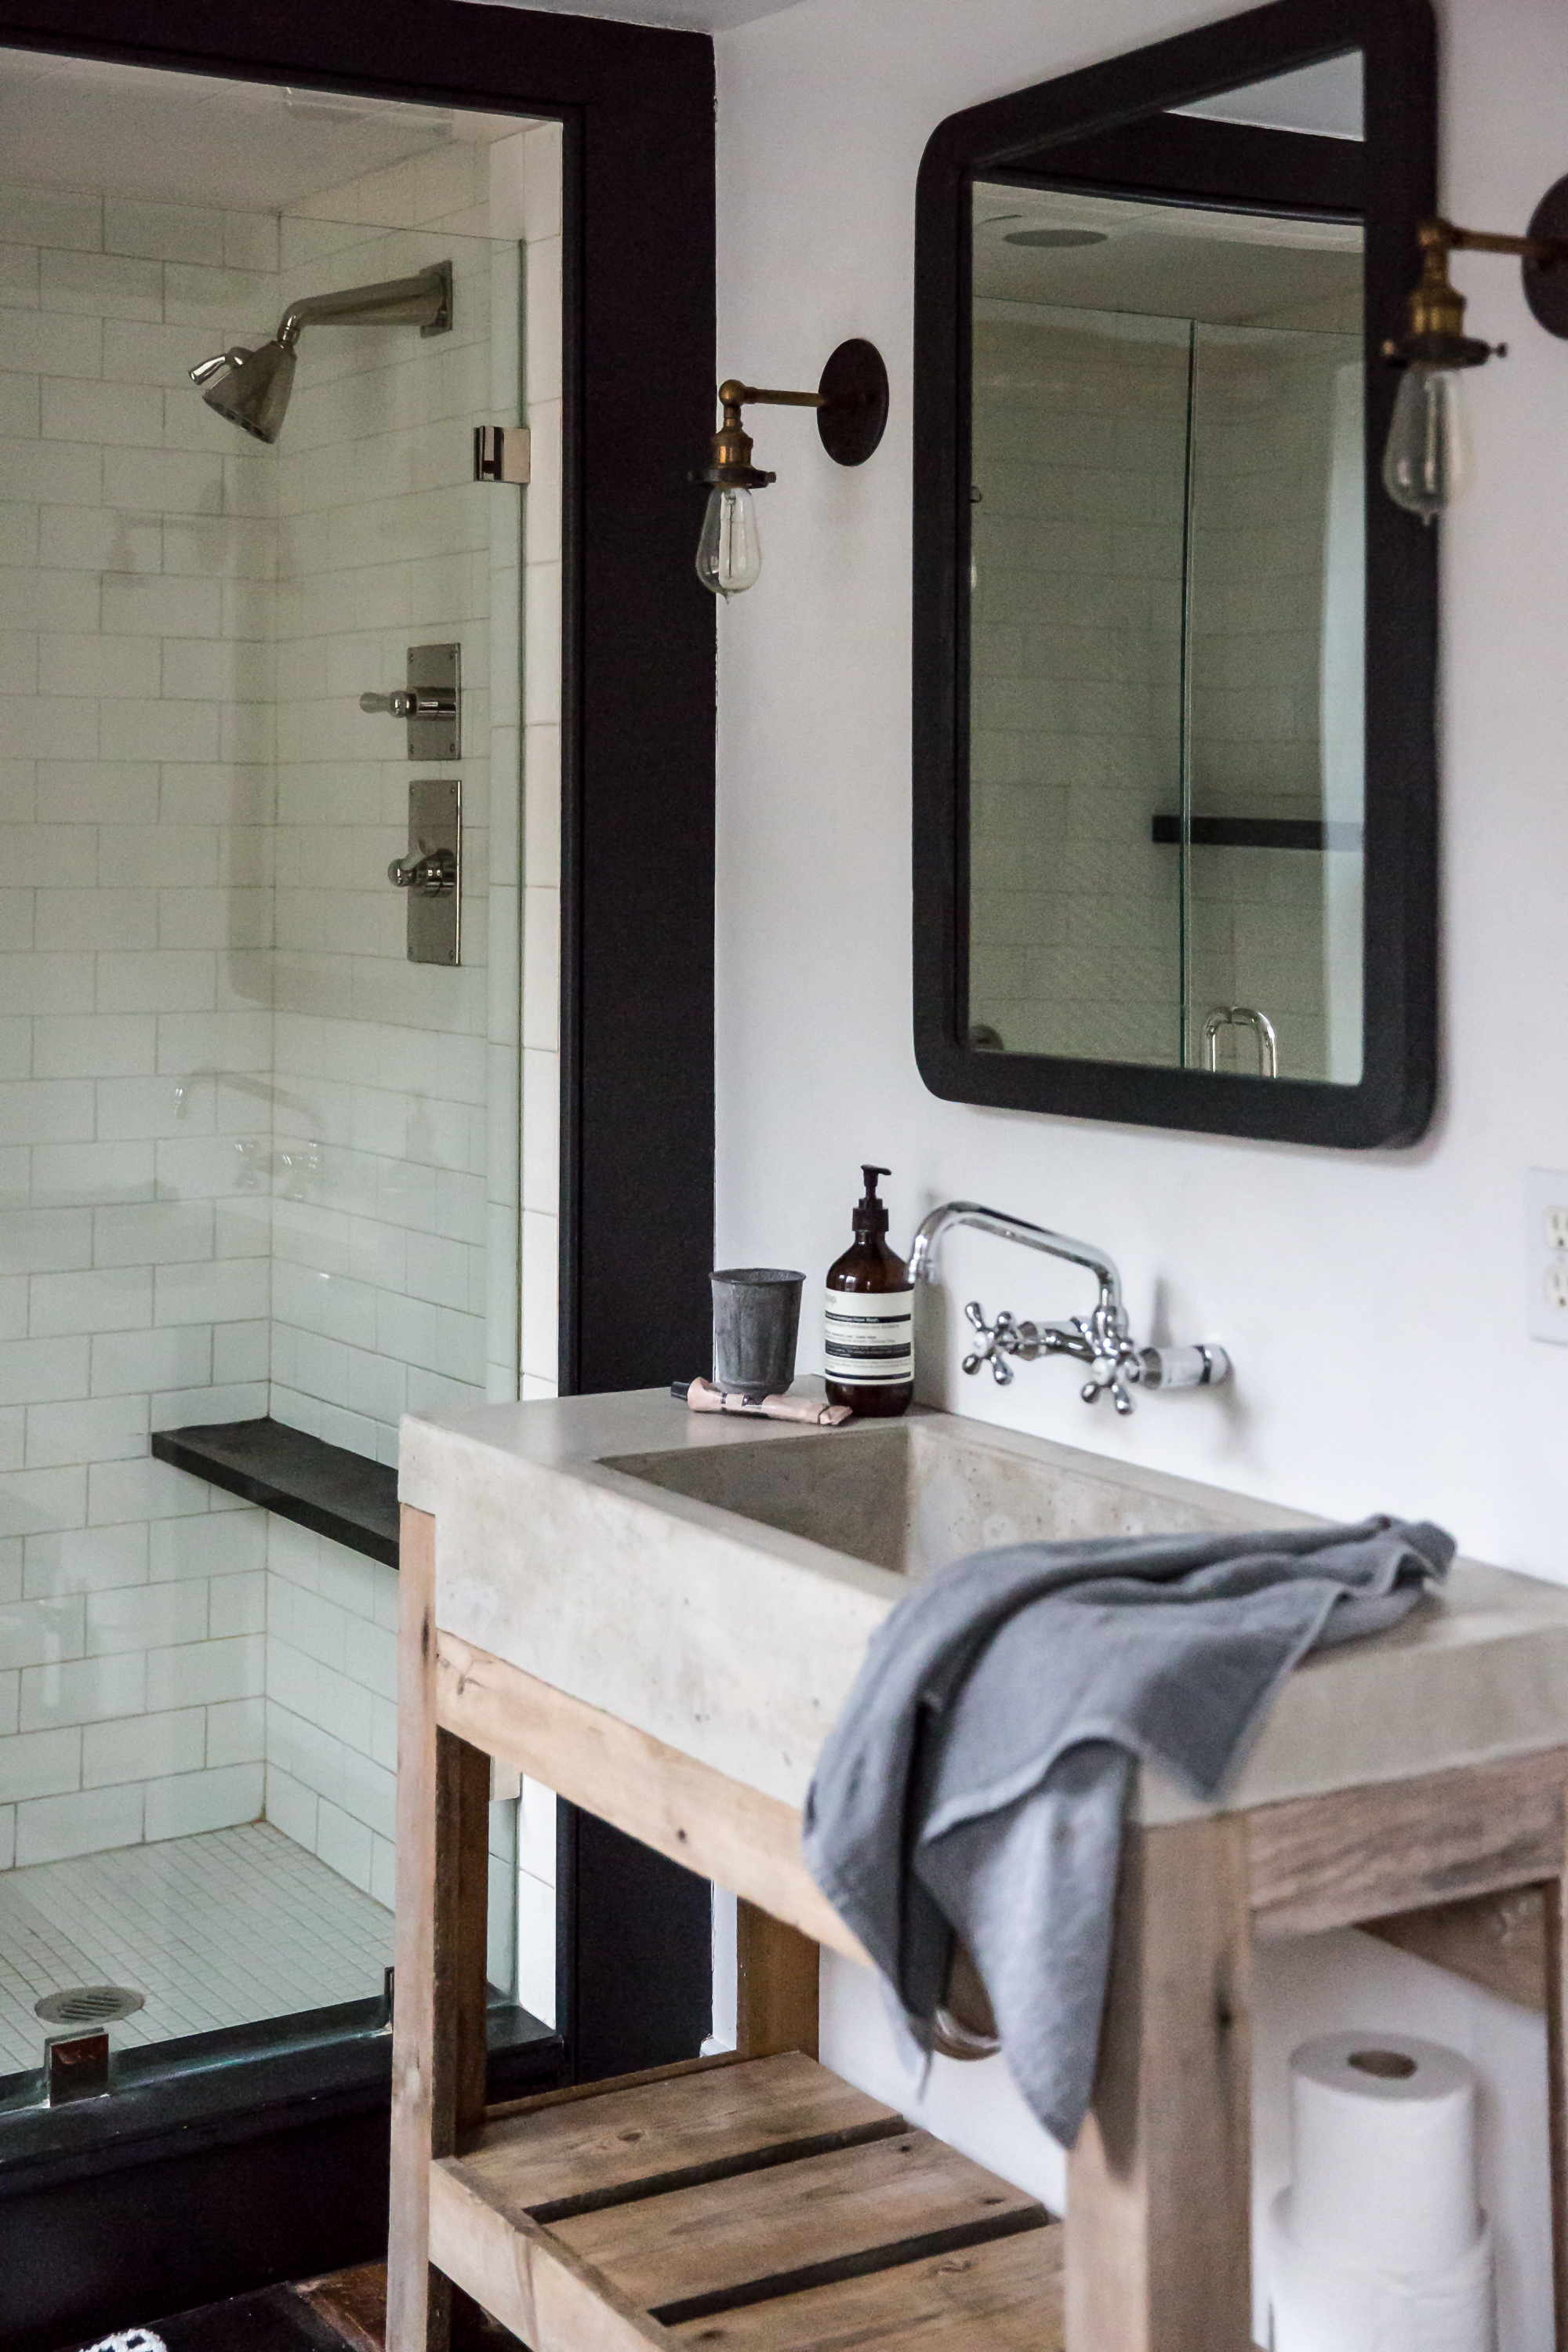 Jersey-Ice-Cream-Co.-Old-Chatham-House-Remodelista-sink-and-shower